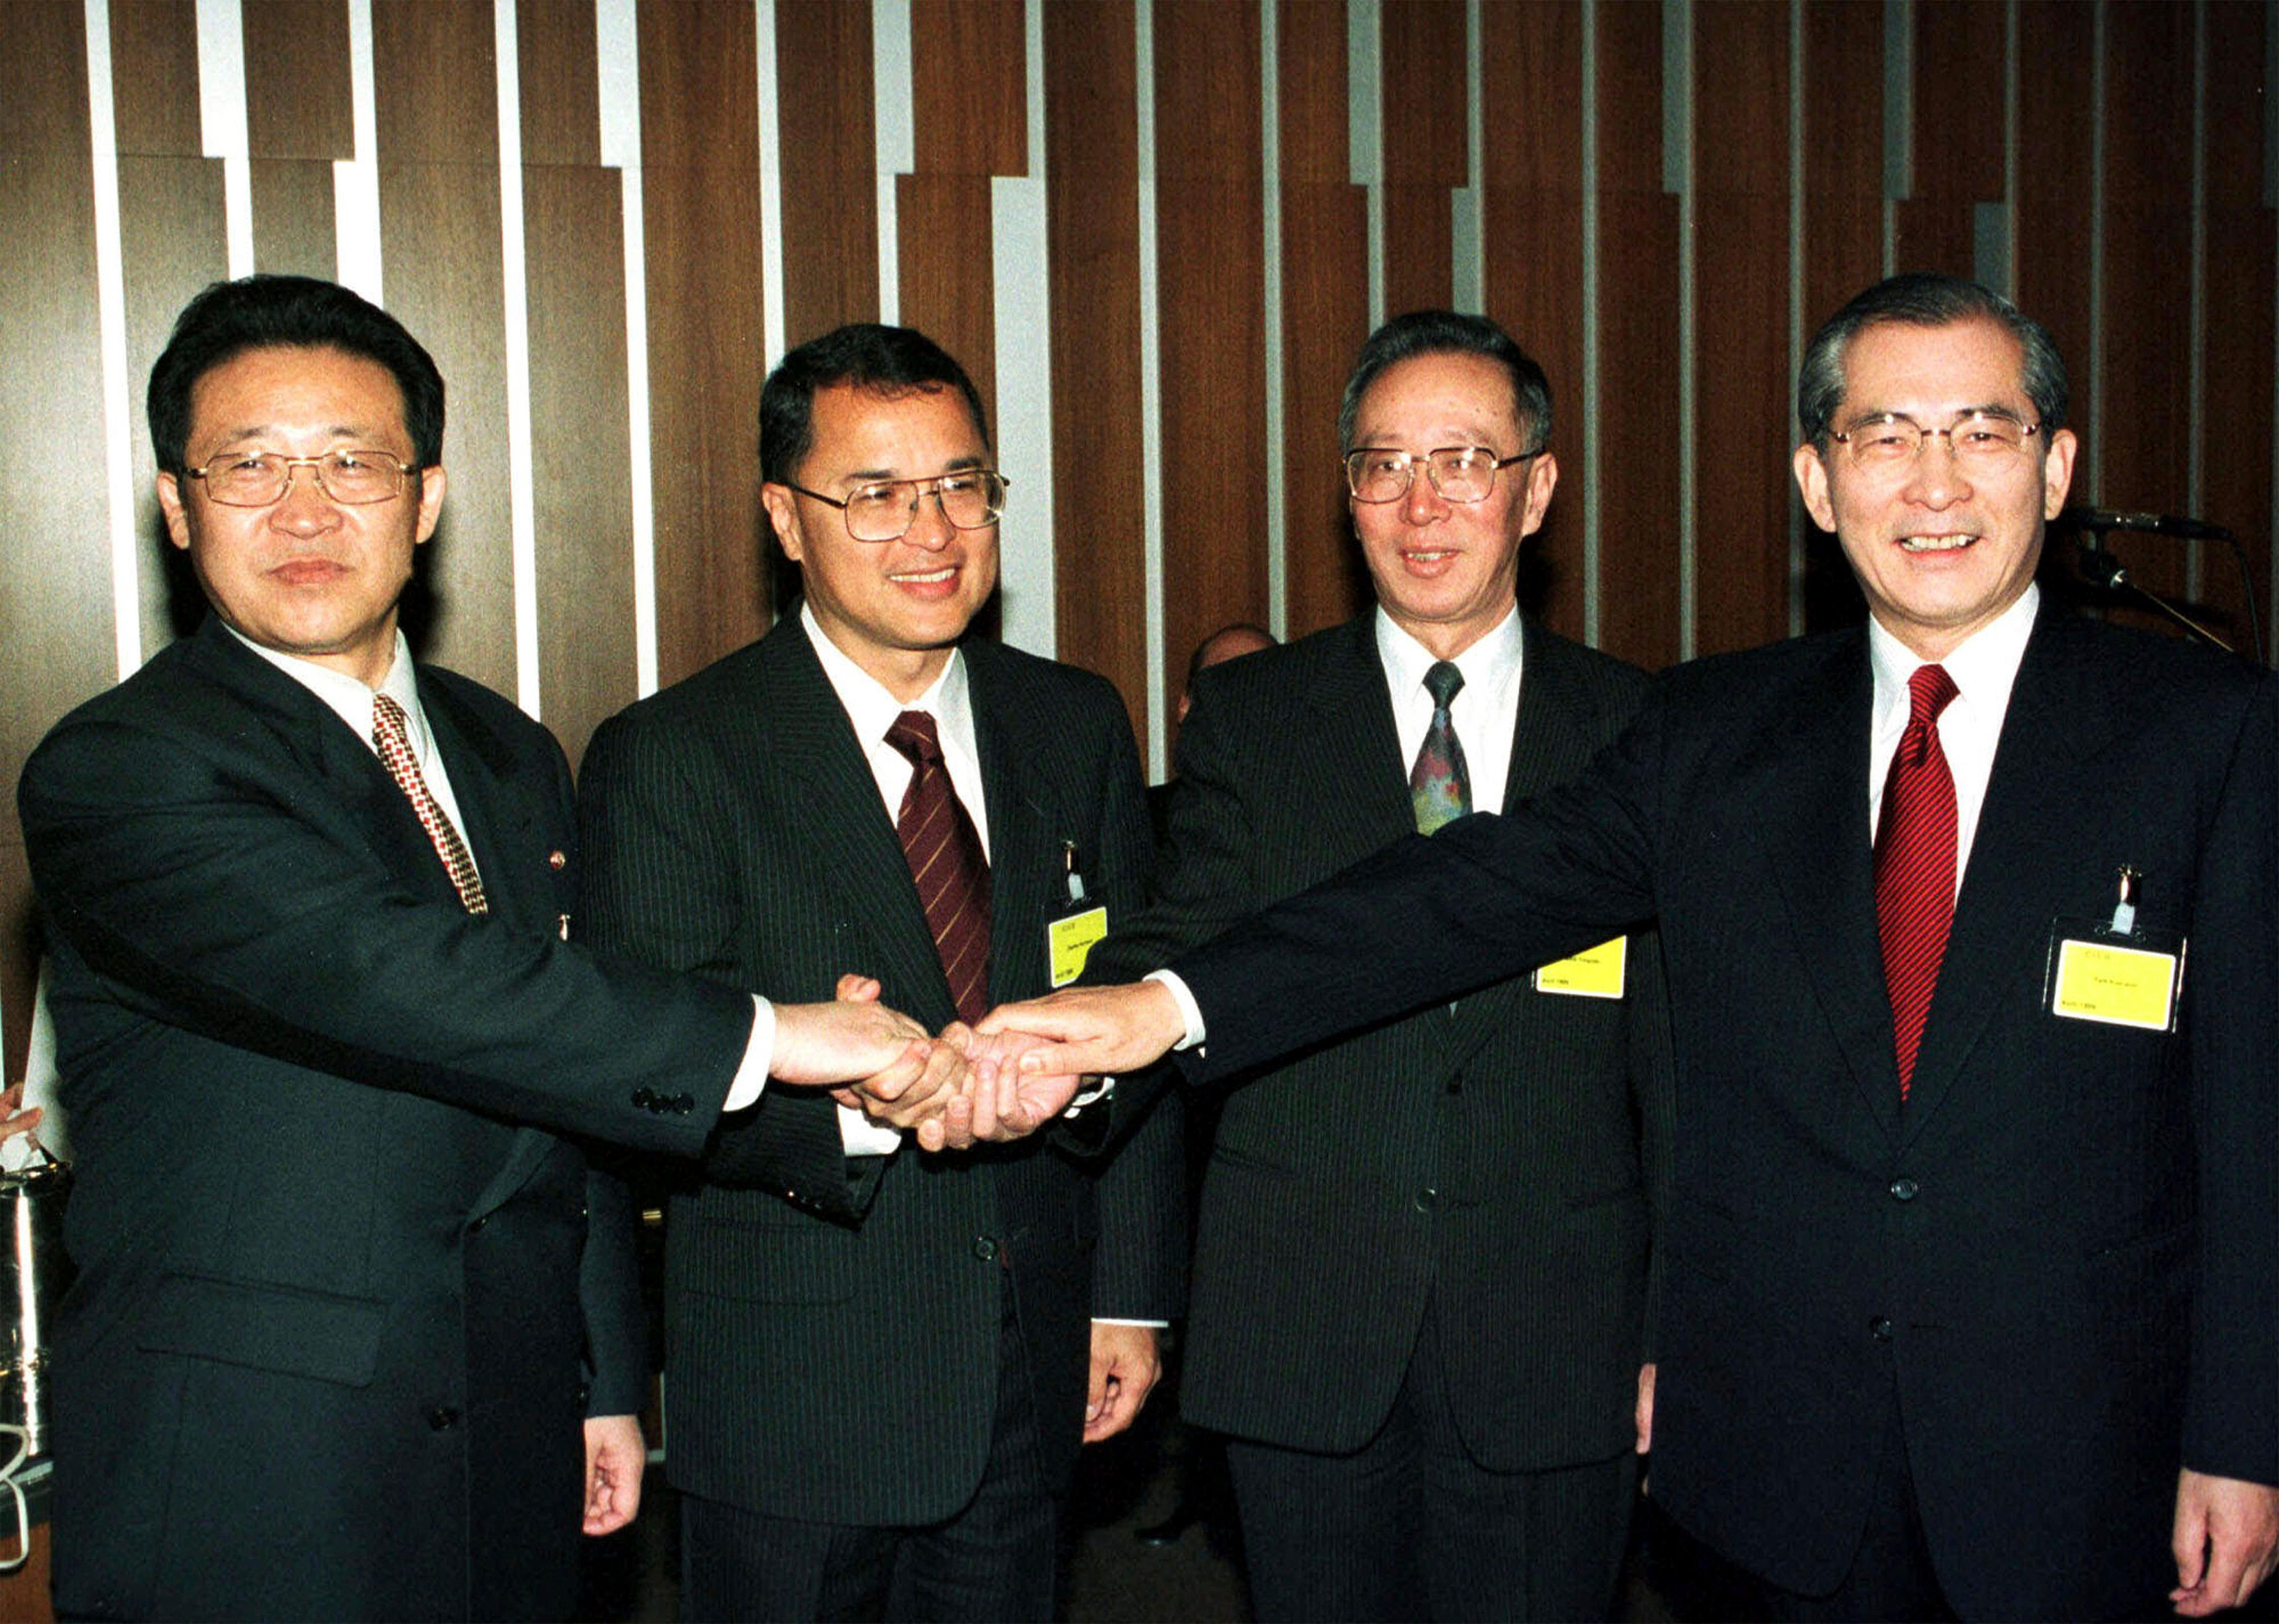 n this April 24, 1999 file photo, delegates of the North and South Korea peace talks join hands before their meeting in Geneva, Switzerland, in this April 24, 1999, file photo. They are from left: North Korean Kim Gye Gwan, American Charles Kartman, China's Qian Yongnian, and South Korean Park Kun-Woo. North Korea has been condemned and sanctioned for its nuclear ambitions, yet has still received food, fuel and other aid from its neighbors and adversaries for decades. How does the small, isolated country keep getting what it wants and needs to prevent its collapse? (AP Photo/Donald Stampfli, File)